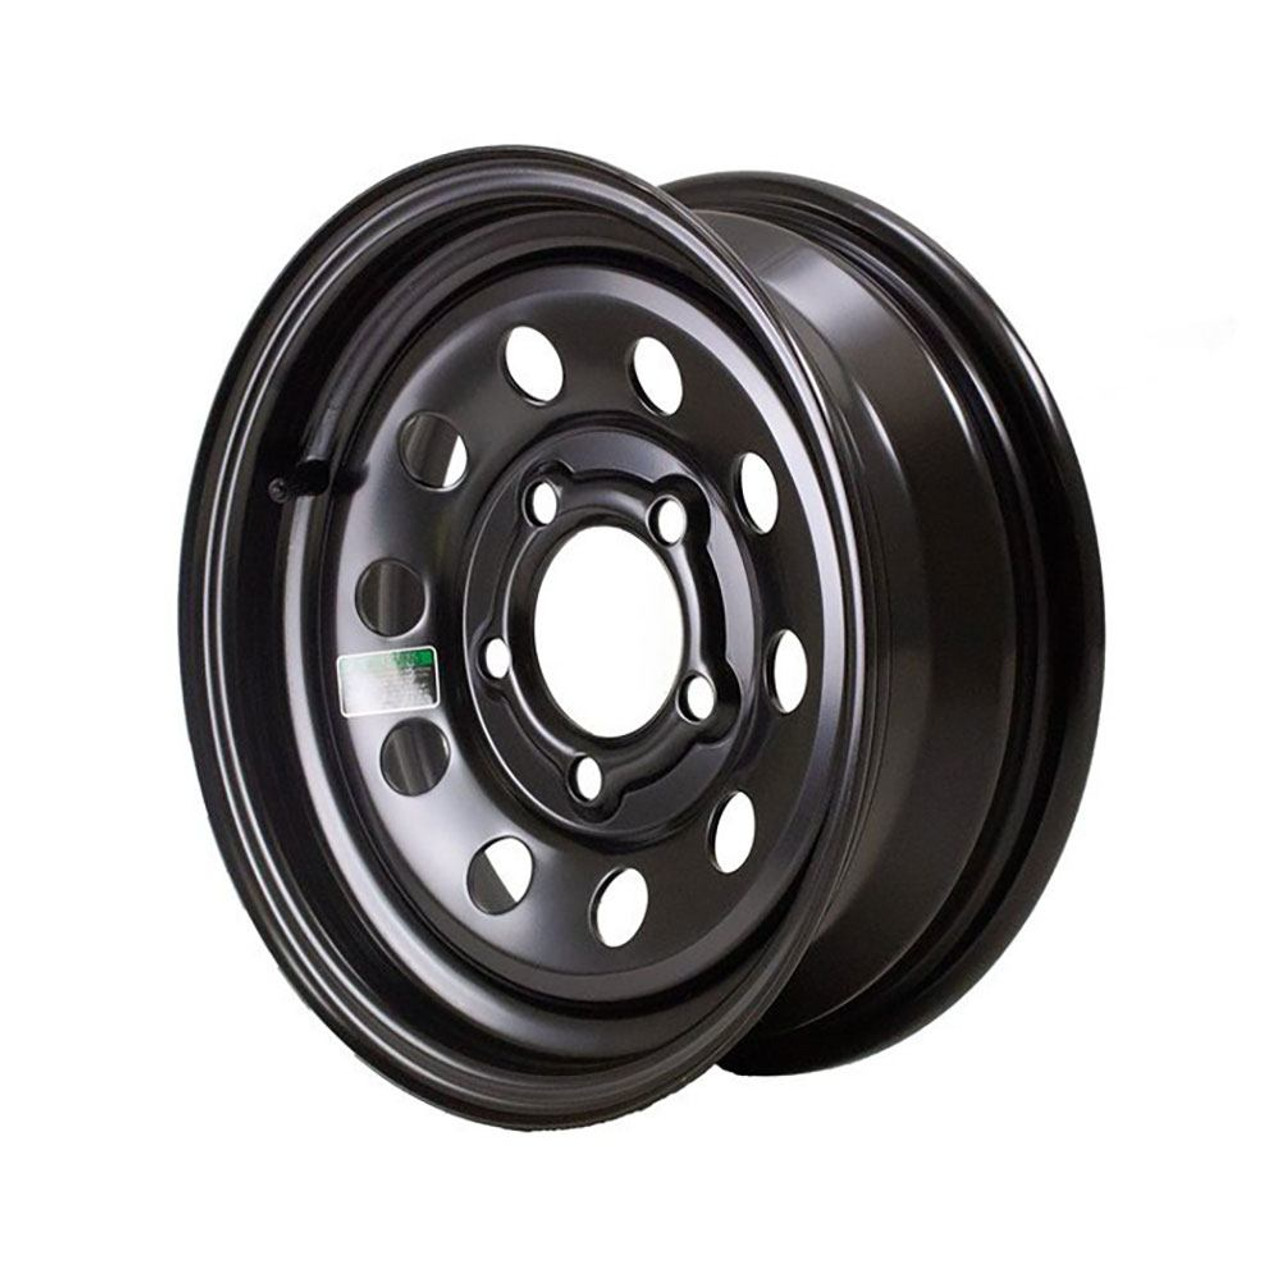 "13X4.5 5-Lug on 4.5"" Black Mod Trailer Wheel"